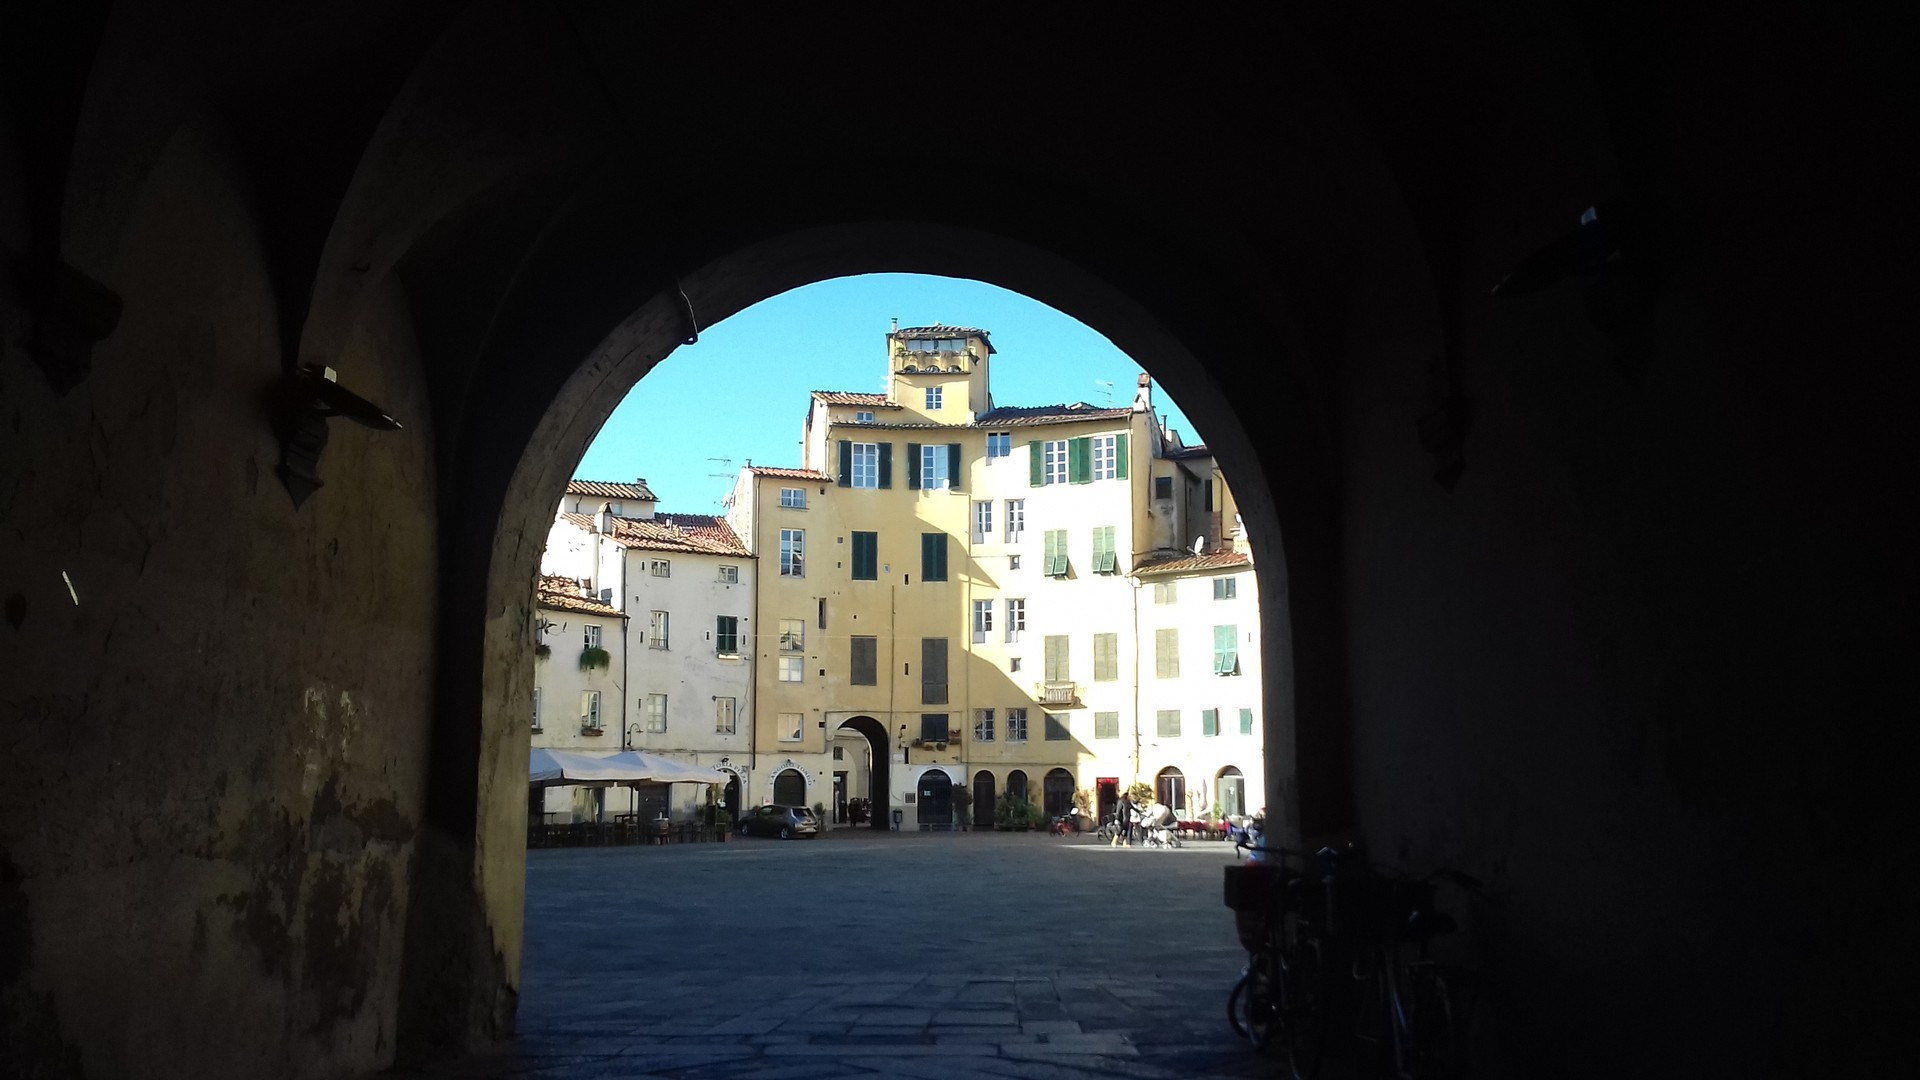 lucca-cie-opisac-1f0d87bb80c9839a1938ed8